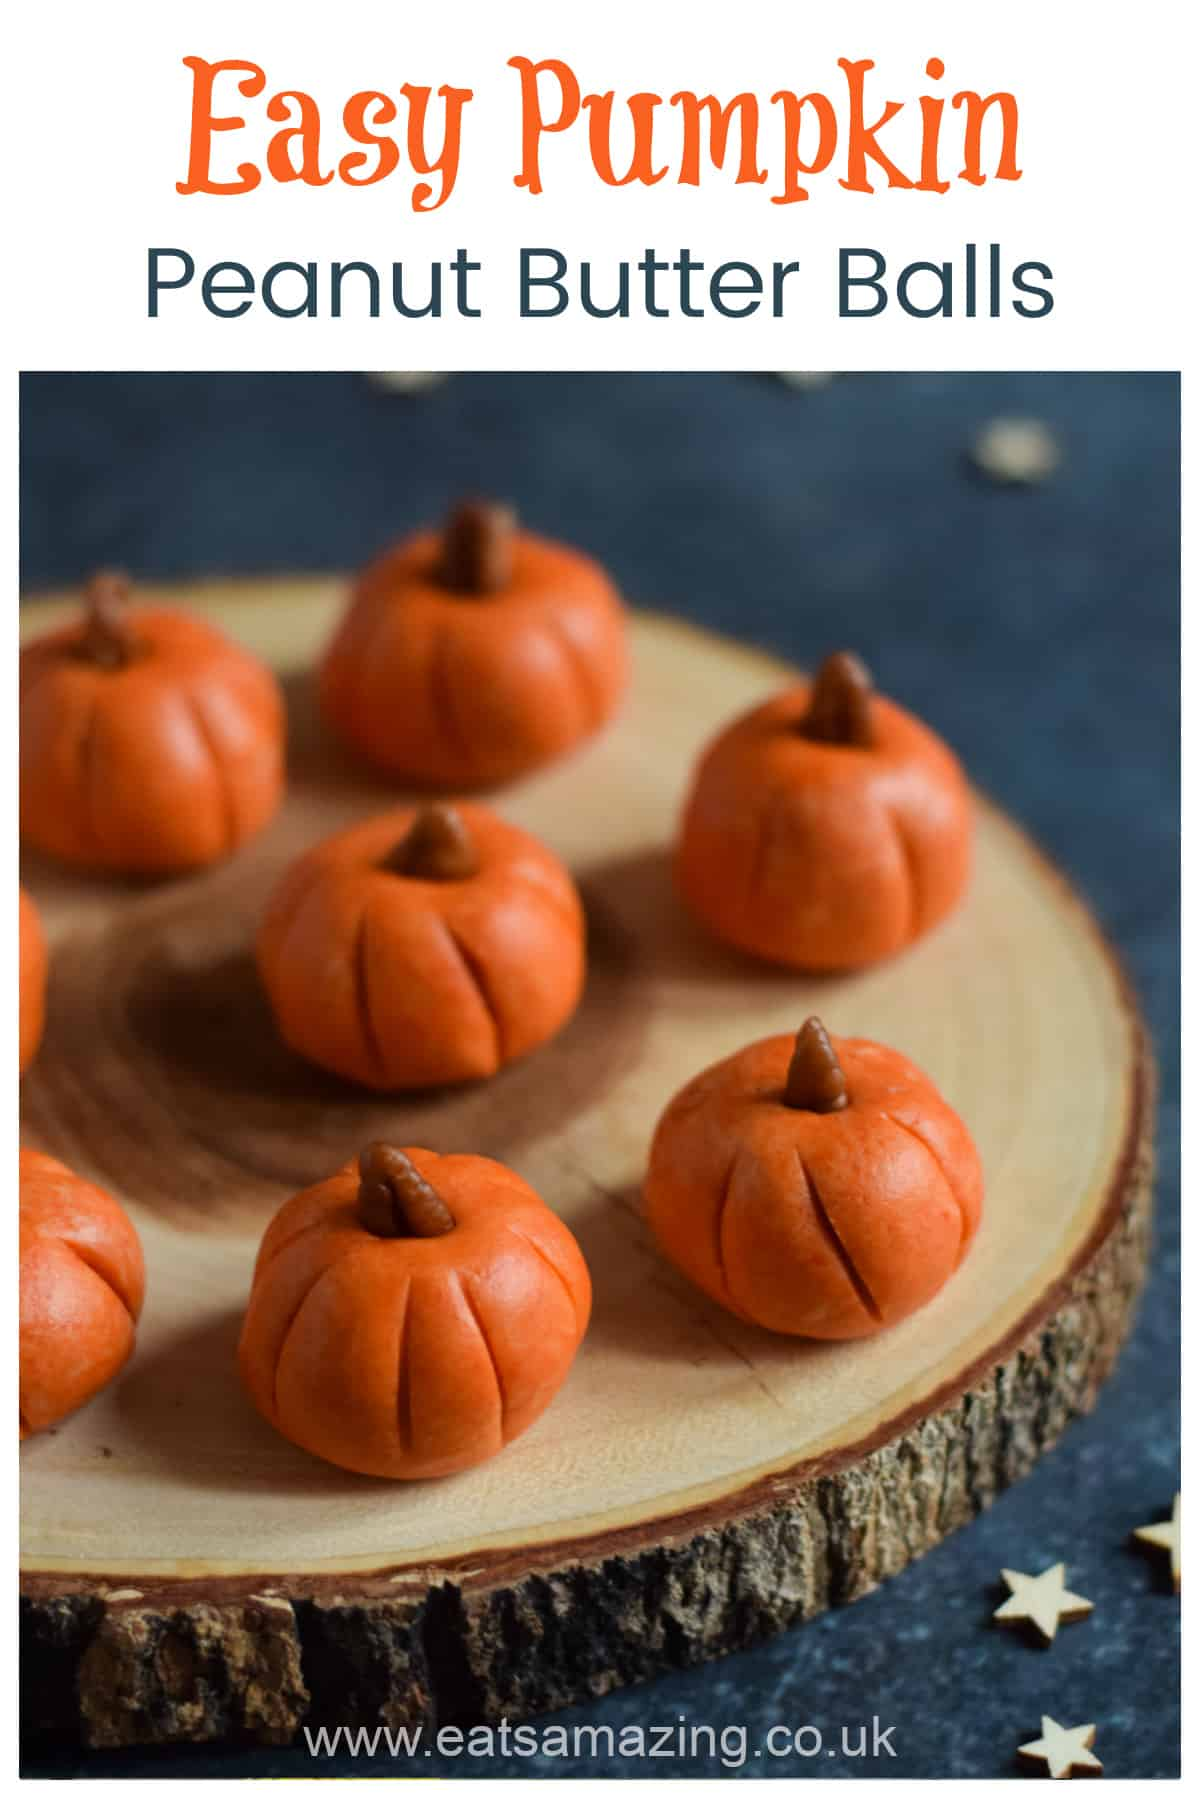 How to make cute and easy Mummy Peanut Butter Balls - fun Halloween recipe for kids